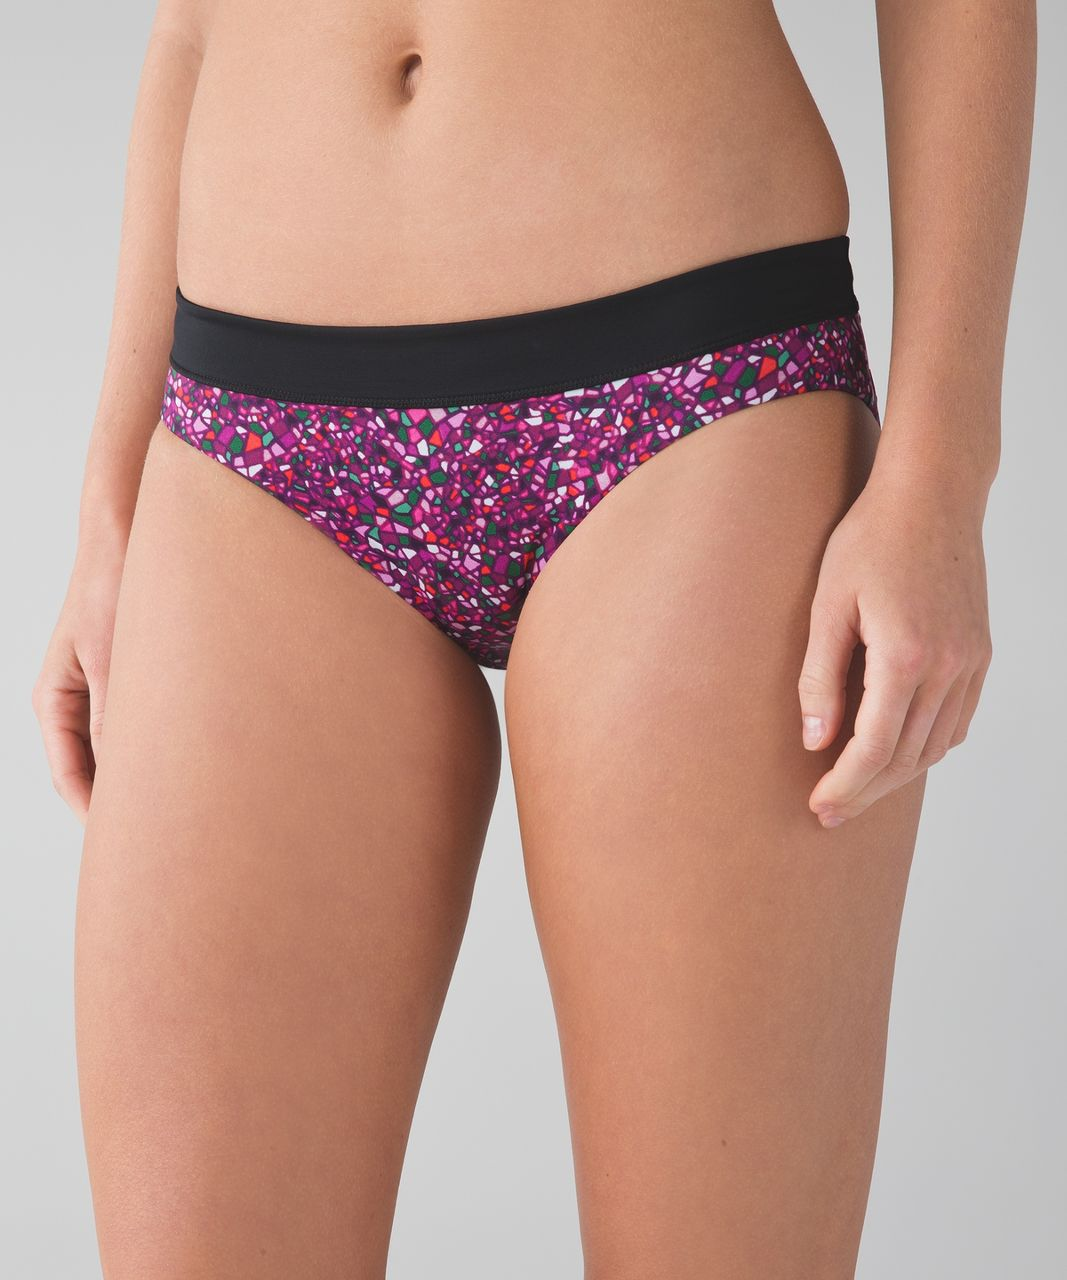 Lululemon Tidal Flow Full Bottom - Paradise Camo Multi / Black / Deep Green